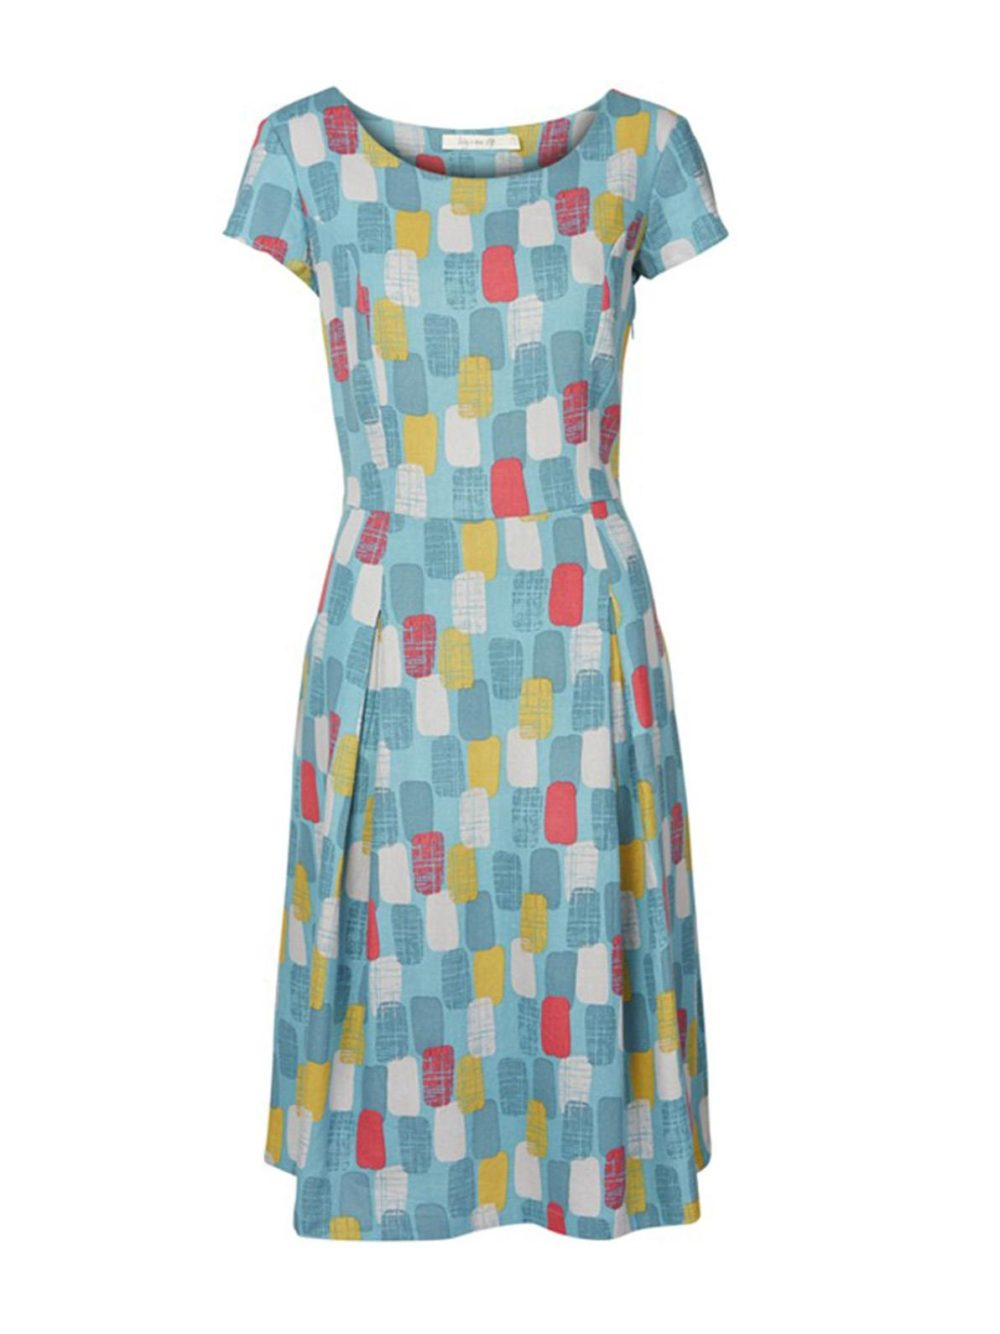 Falmouth Dress Textured Lily and Me Katie Kerr Women's Clothing